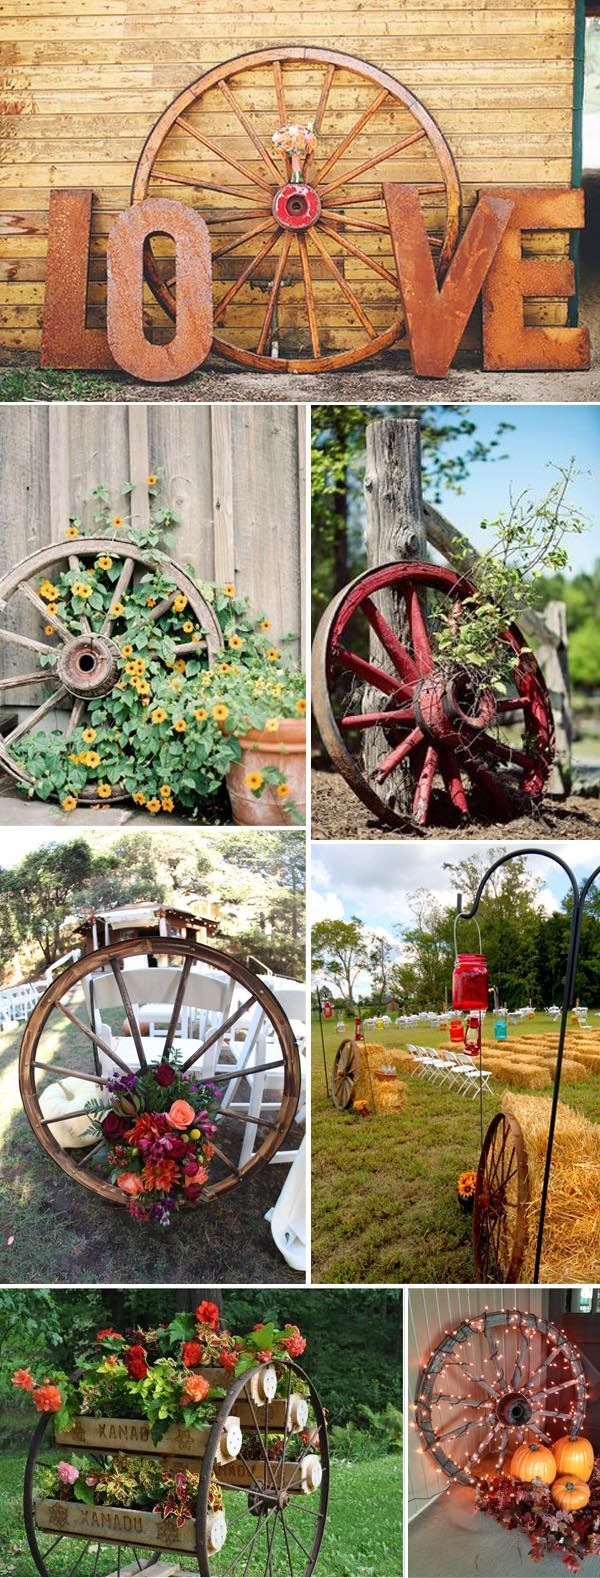 Wedding decoration ideas for home  creative DIY rustic and country wagon wheel decoration ideas  Home